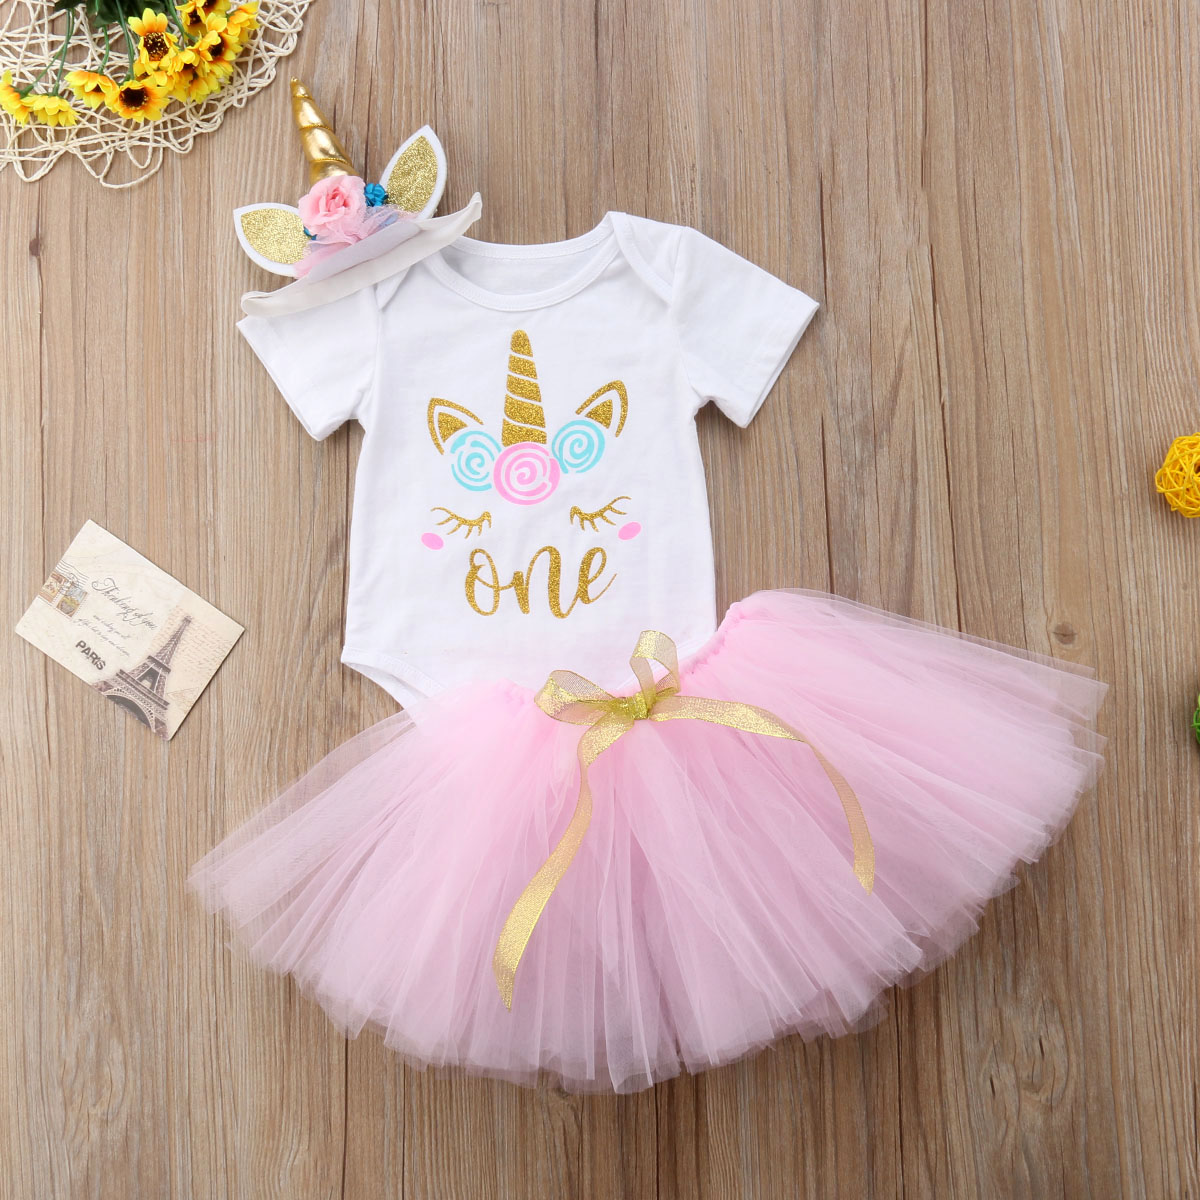 dcaad2f6d Details about US Stock Toddler Baby Girls Unicorn Romper Tutu Skirt Dress  Headband Outfit Set